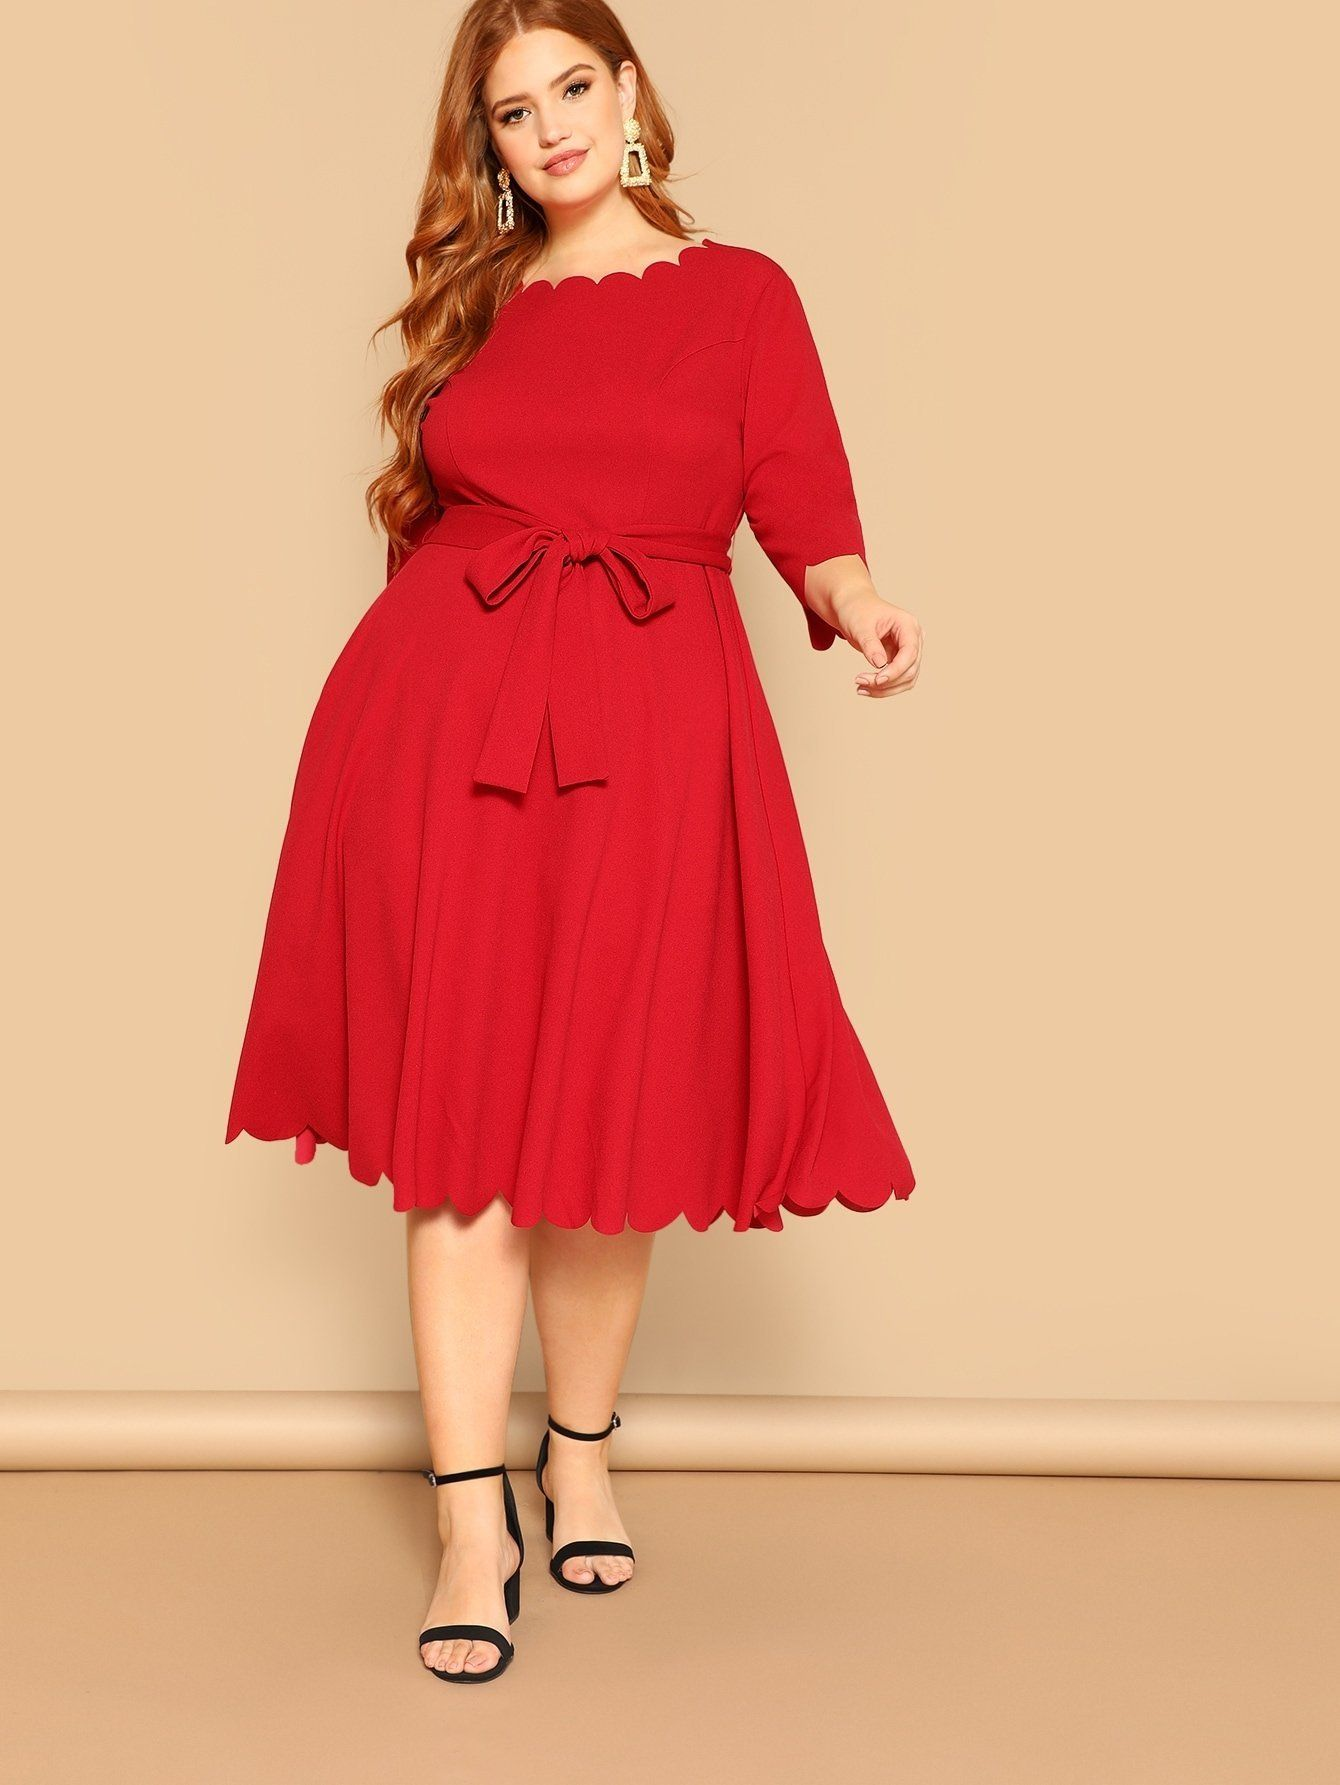 Plus Scalloped Trim Belted Fit Flare Dress Dresses To Wear To A Wedding Fit Flare Dress Big Size Dress [ 1785 x 1340 Pixel ]